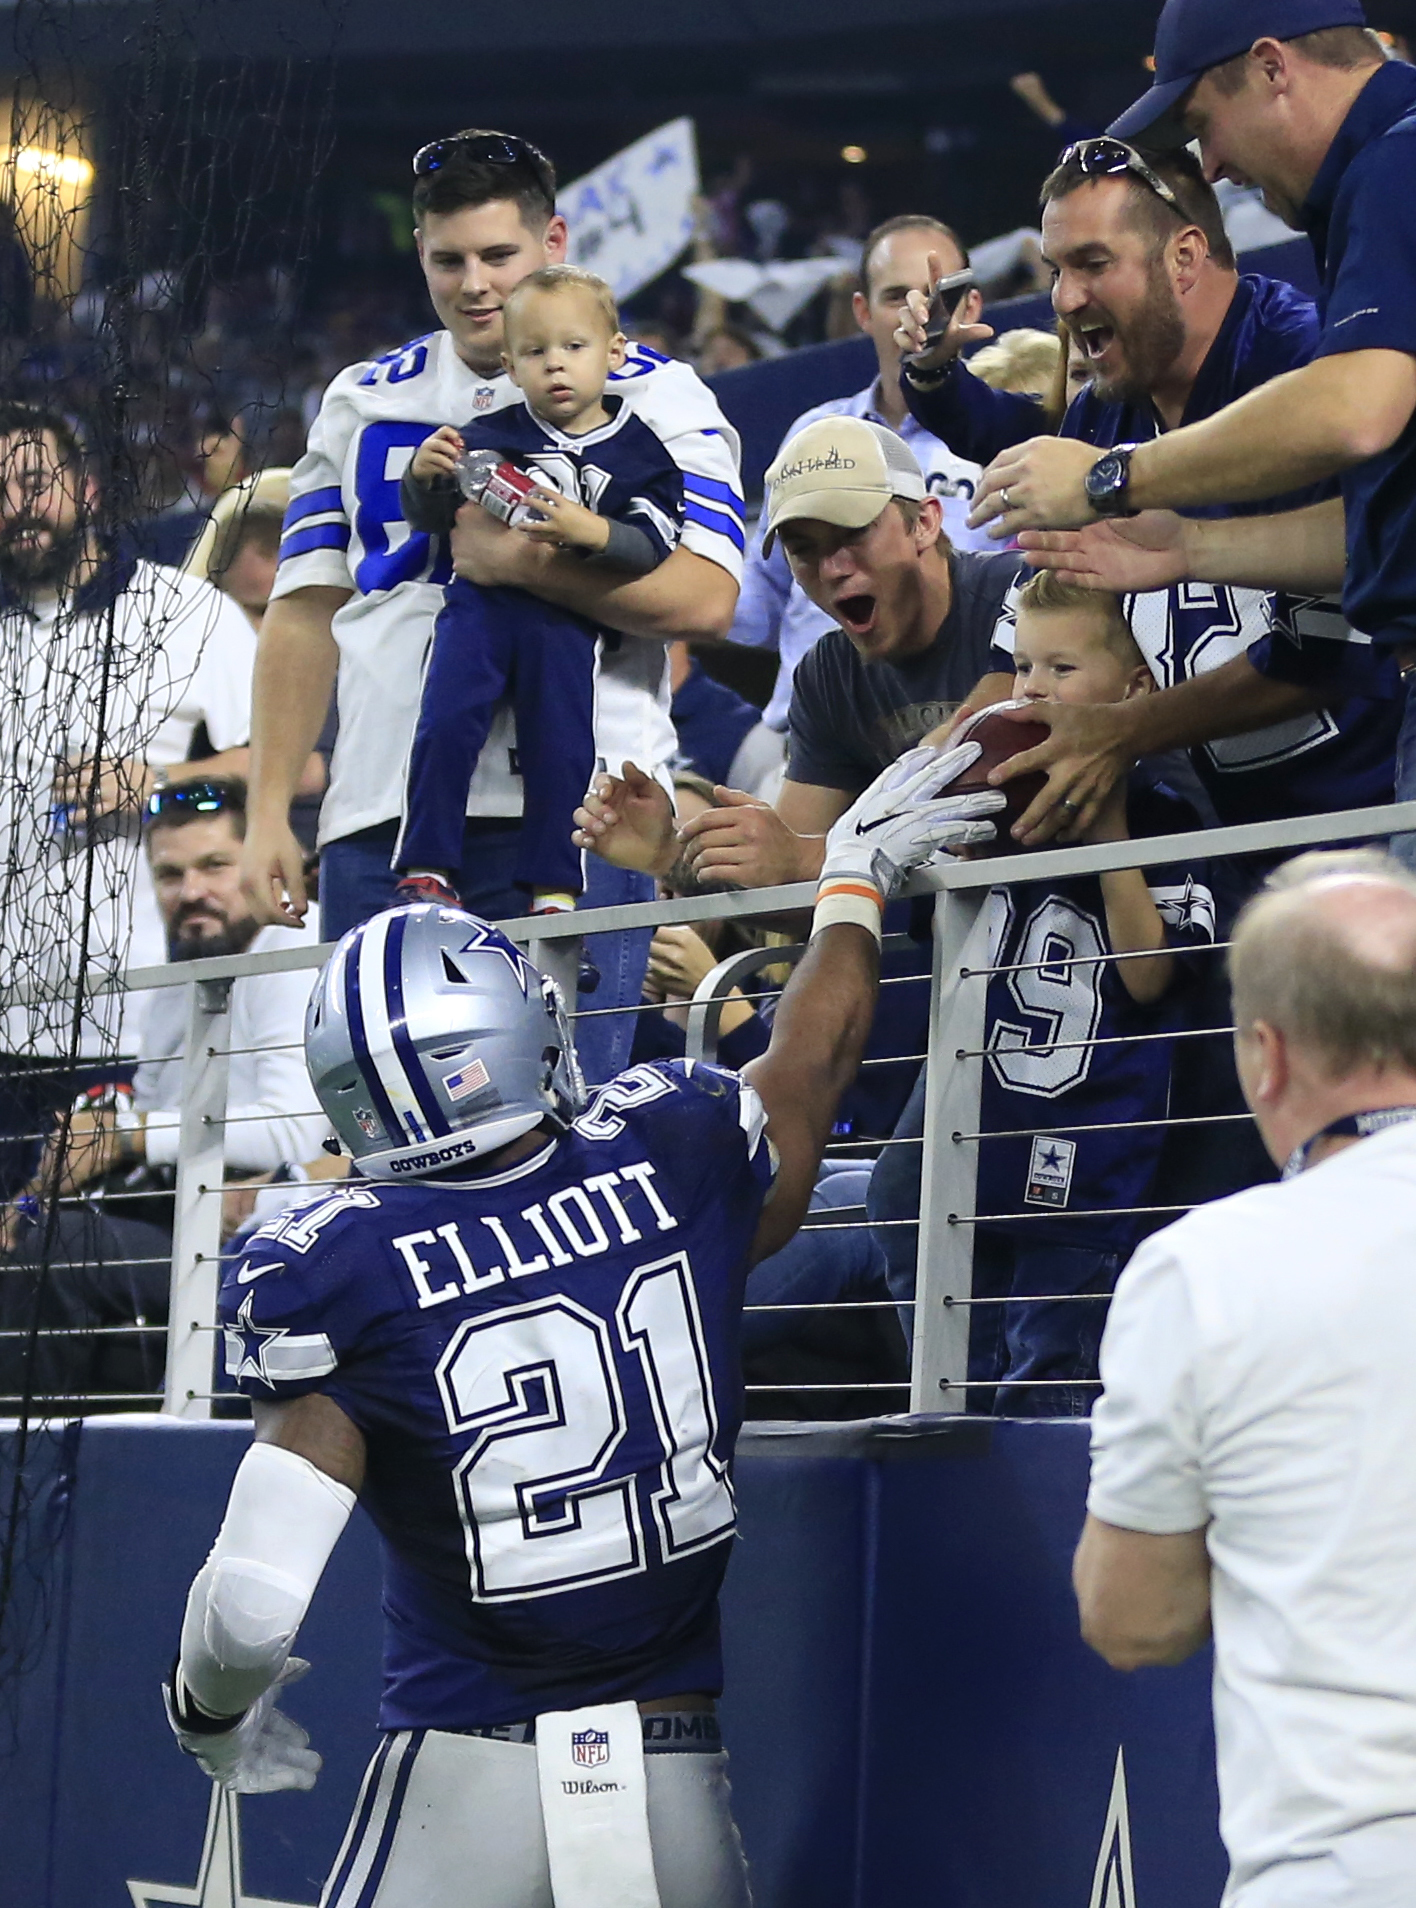 Dallas Cowboys running back Ezekiel Elliott (21) hands the ball to a young child after scoring a touchdown against the Washington Redskins during the second half of an NFL football game, Thursday, Nov. 24, 2016, in Arlington, Texas. (AP Photo/Ron Jenkins)